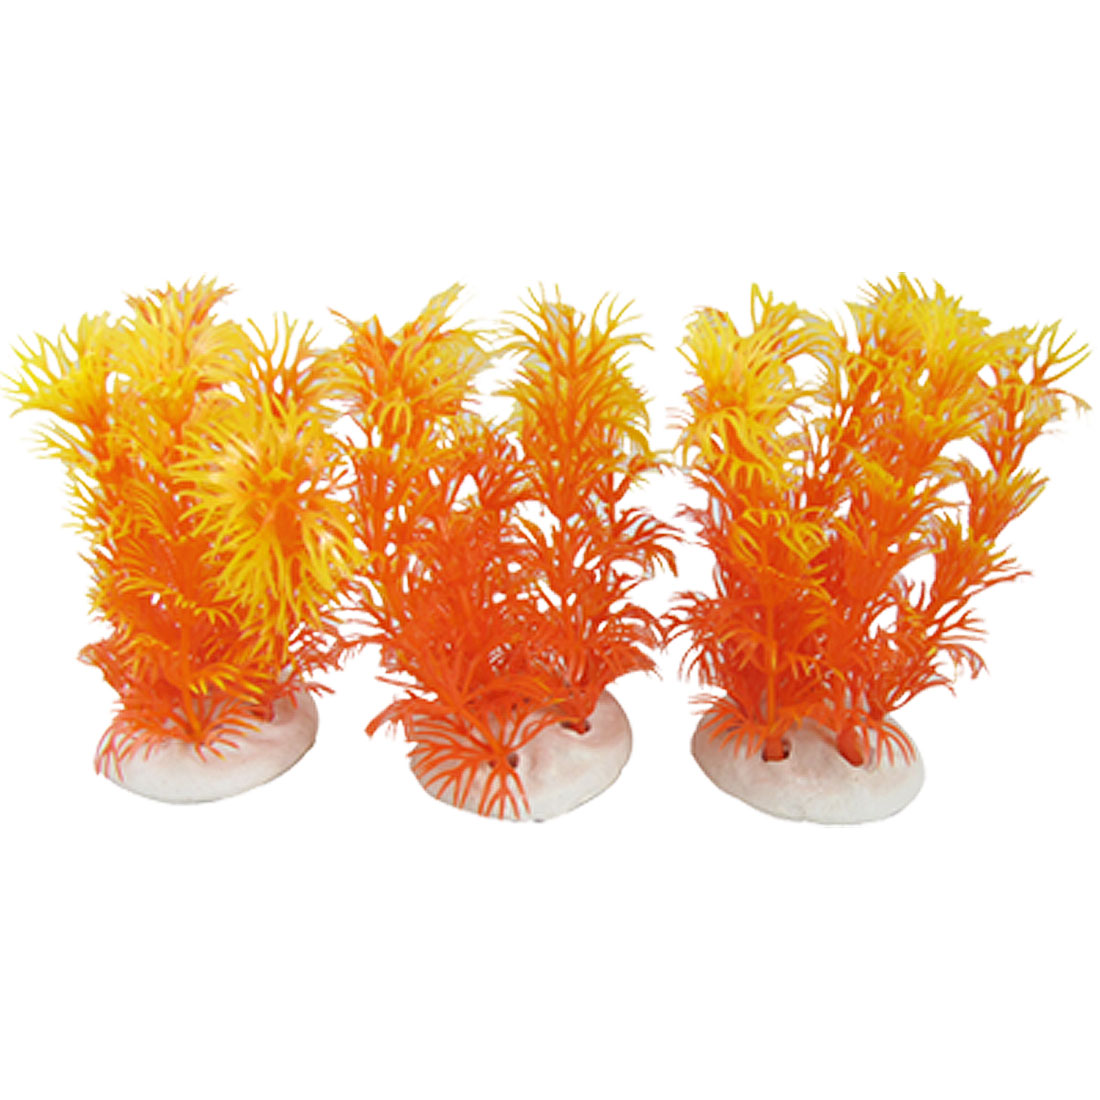 Fish Tank 3pcs Underwater Plastic Decoration Orange